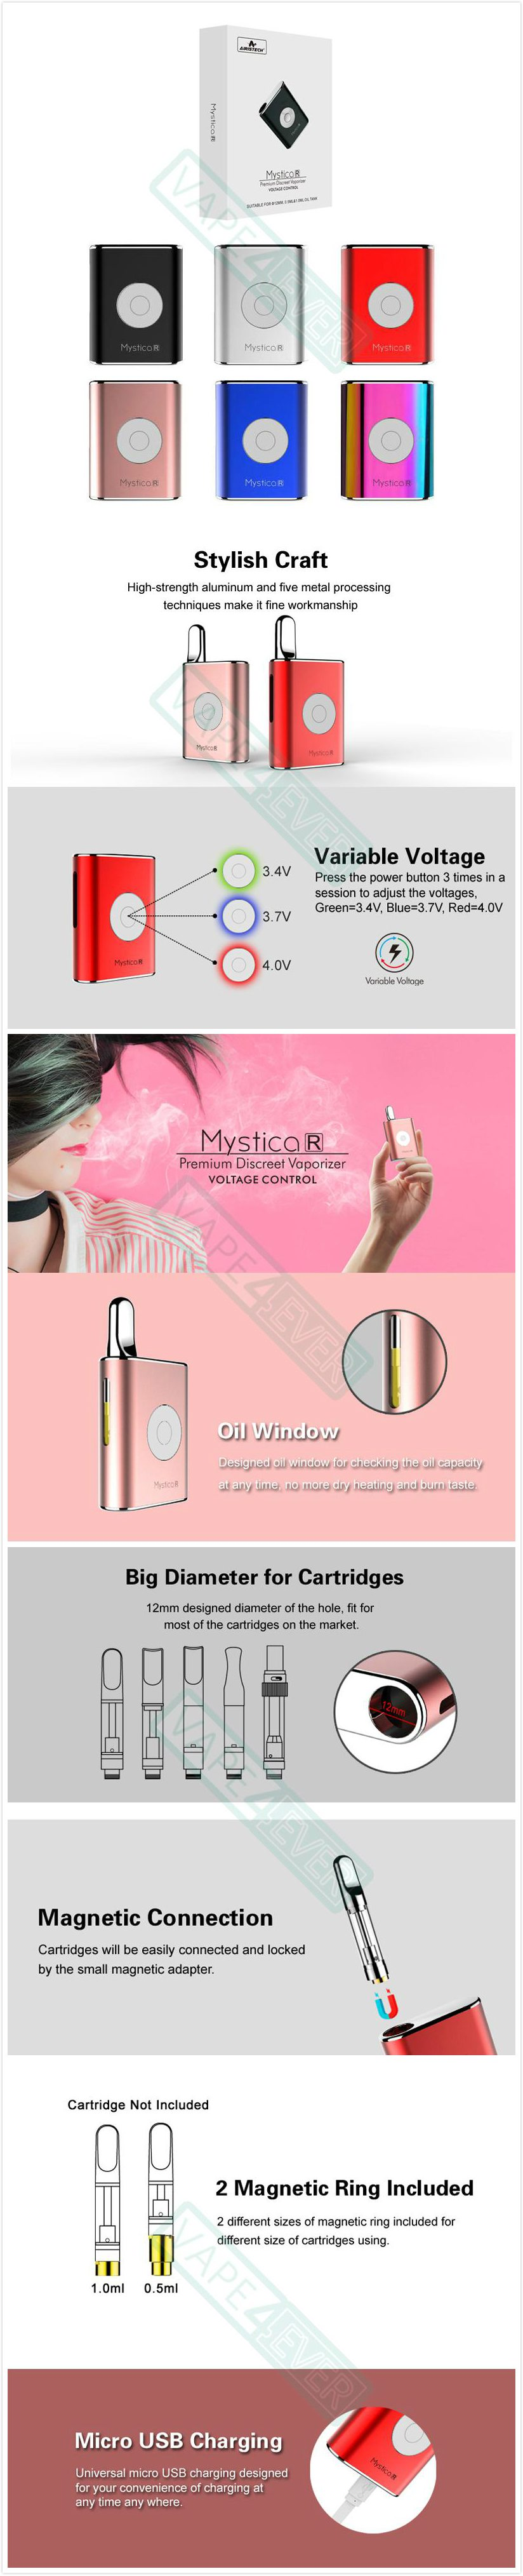 Airistech Mystica R Mod VV Box Mod For CBD/THC 450mAh Preheat Battery Instruction